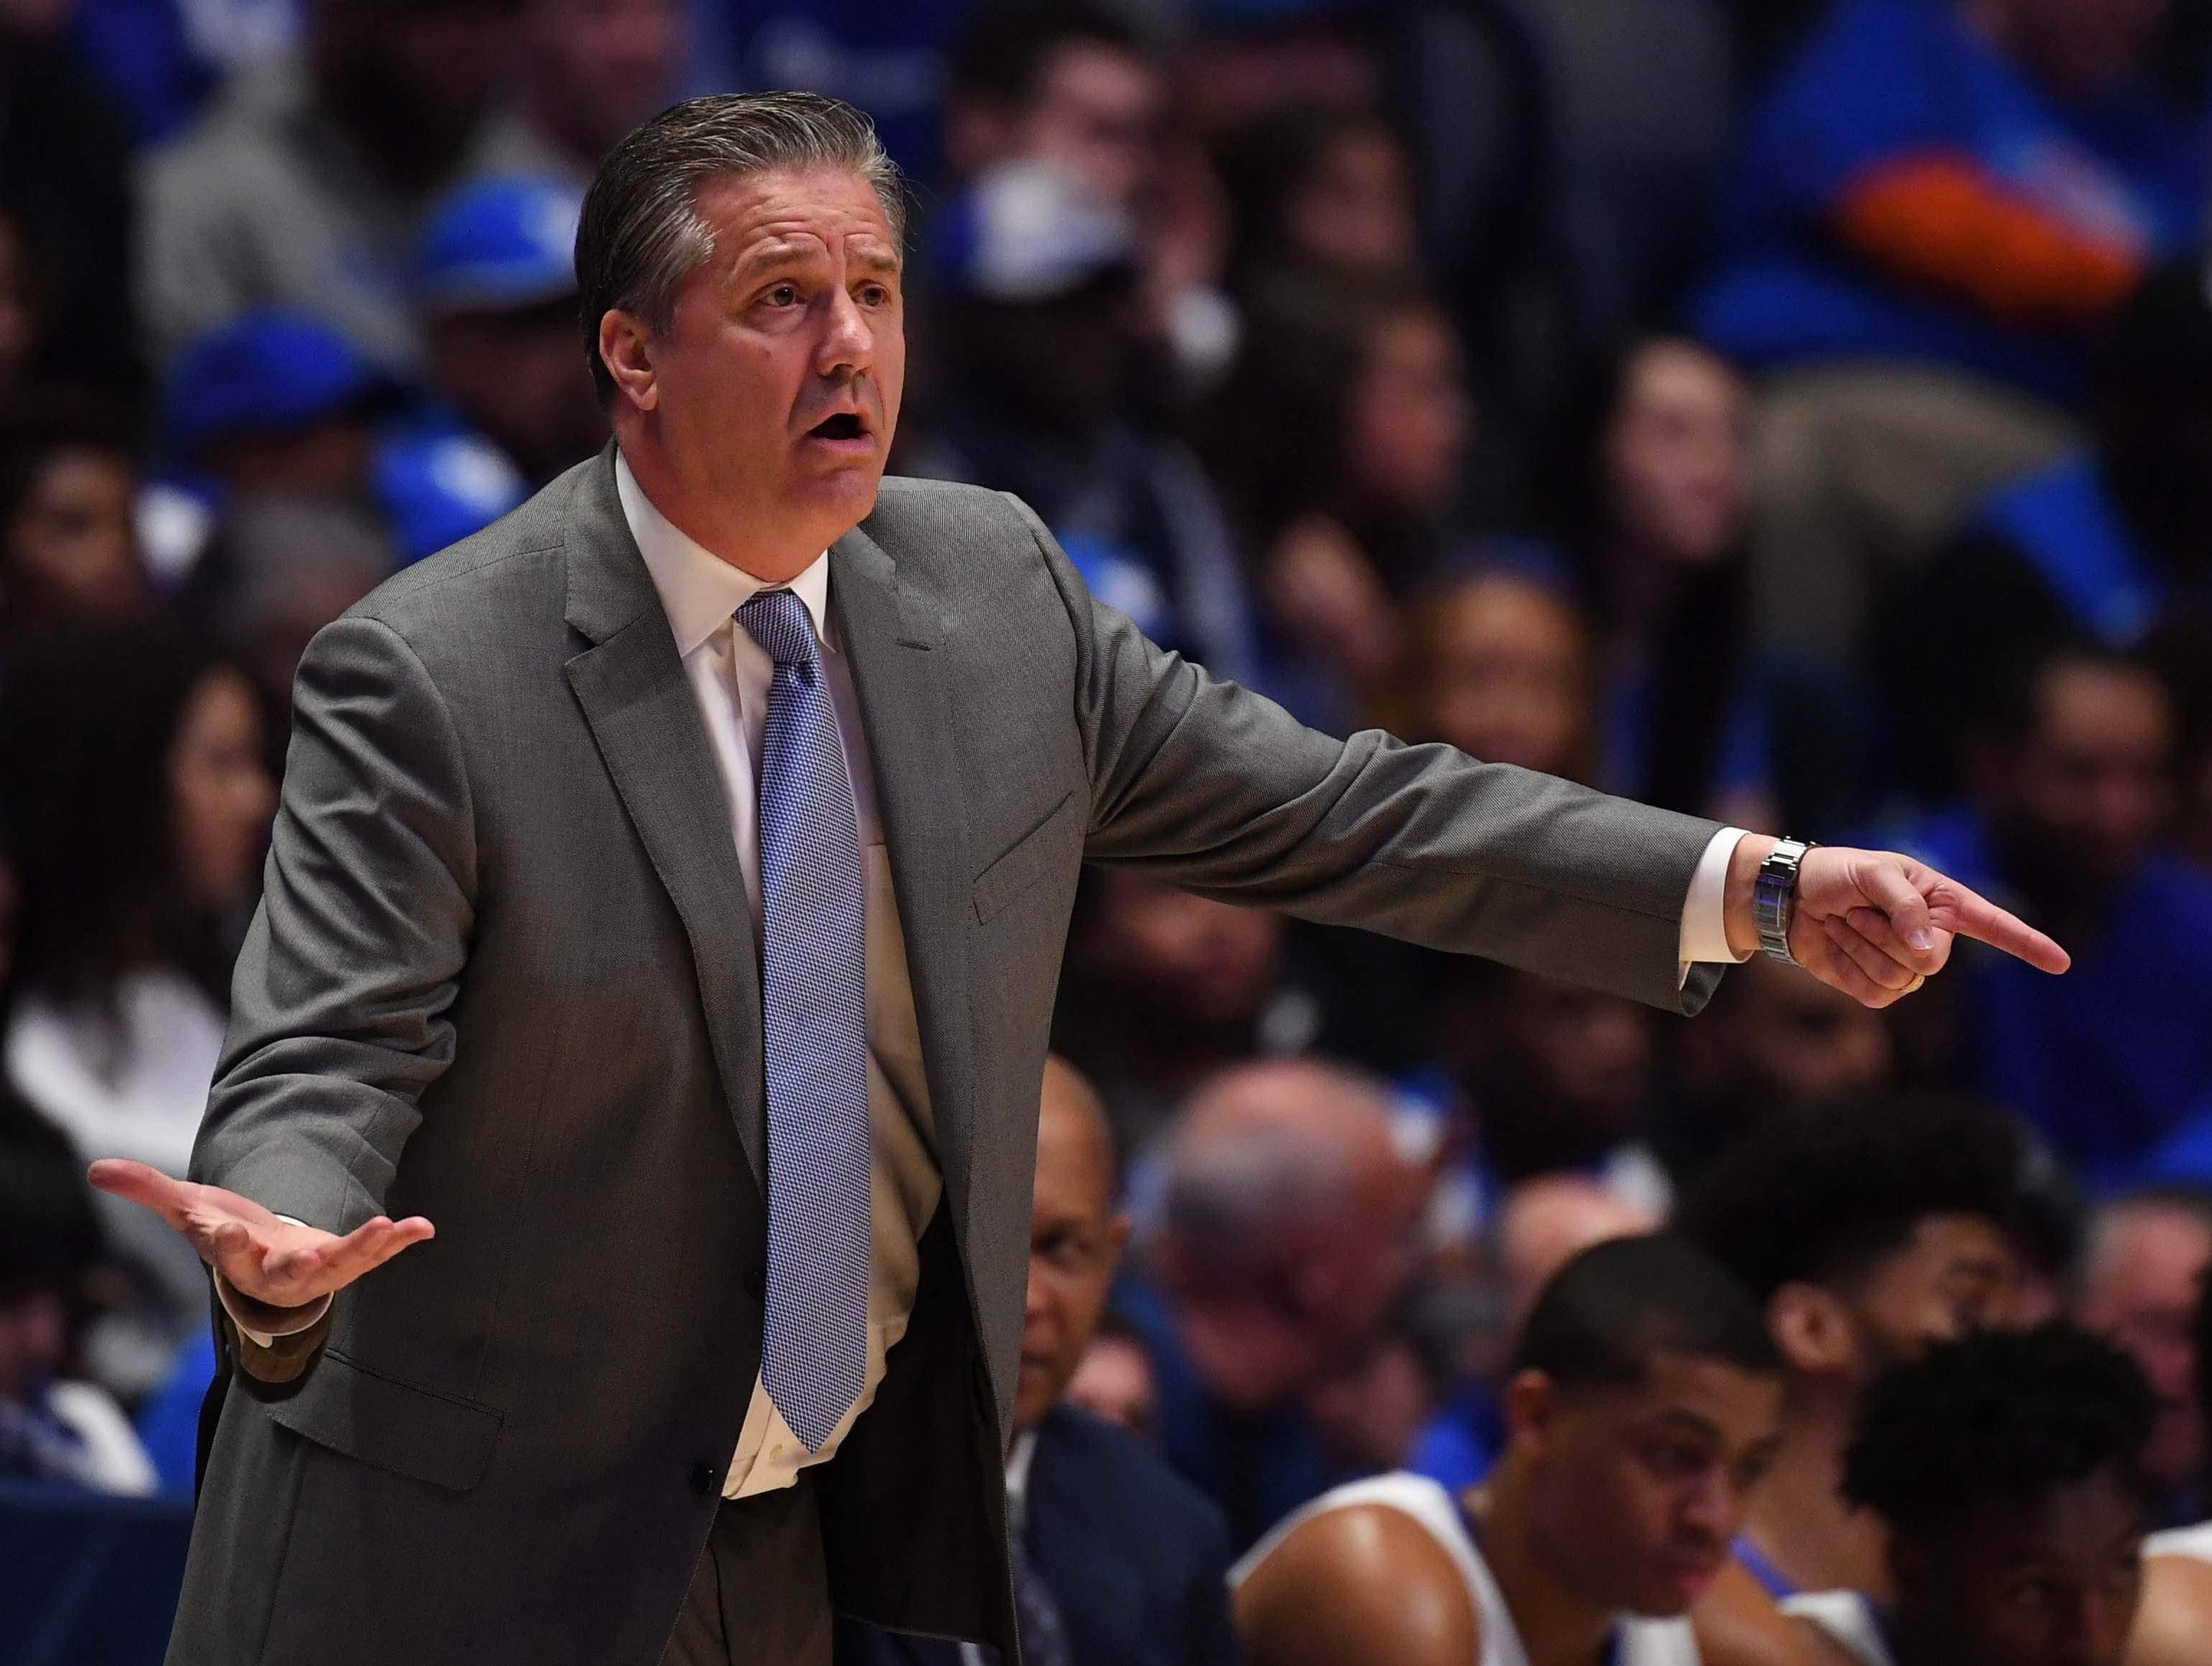 Mar 15, 2019; Nashville, TN, USA; Kentucky Wildcats head coach John Calipari during the first half against the Alabama Crimson Tide  of the SEC conference tournament at Bridgestone Arena. Mandatory Credit: Christopher Hanewinckel-USA TODAY Sports